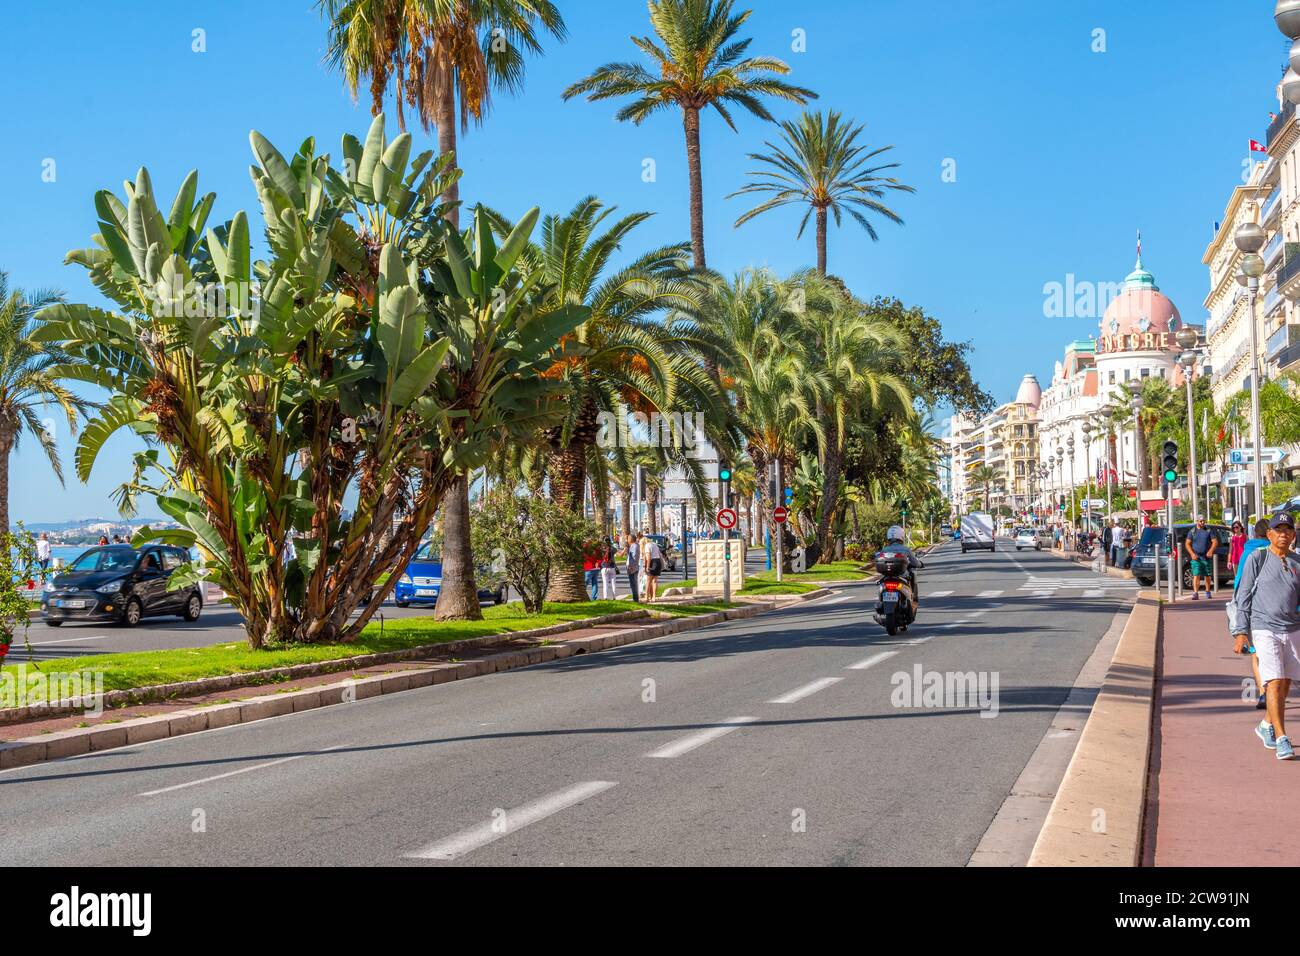 The main street Promenade des Anglais that runs along the French Riviera at Nice, France, on a summer day. Stock Photo